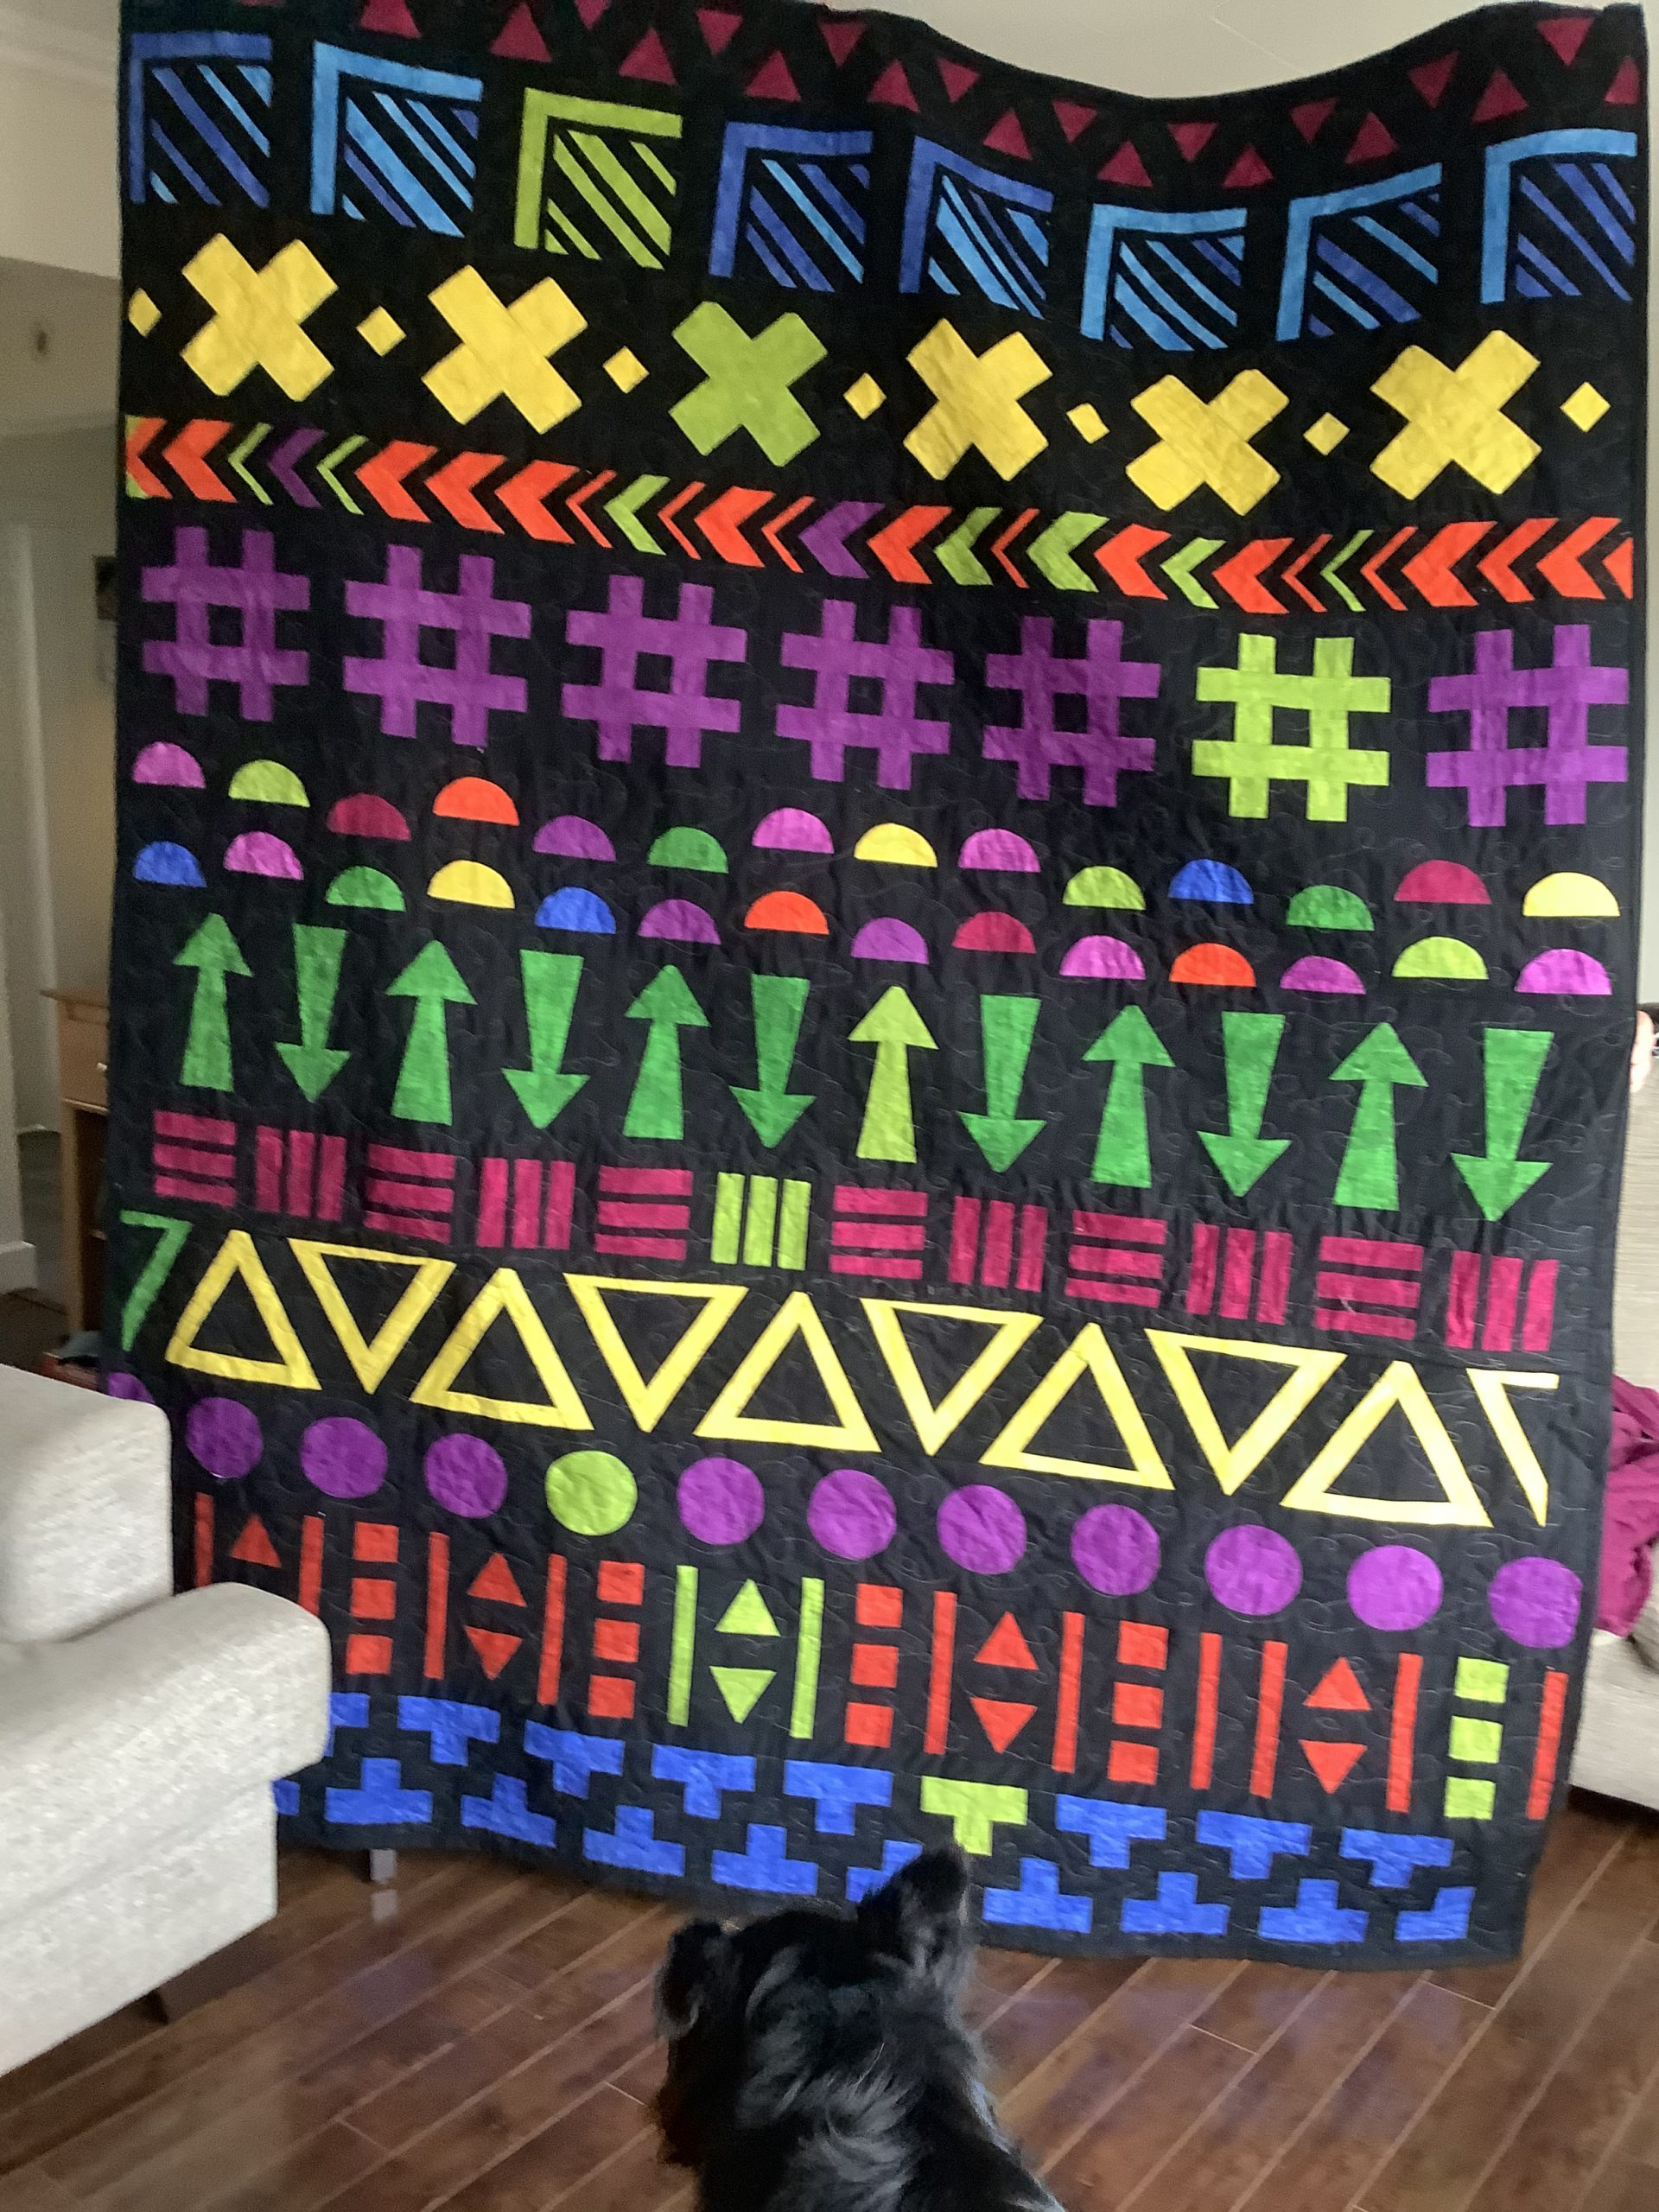 My finished quilt. I learned so much!